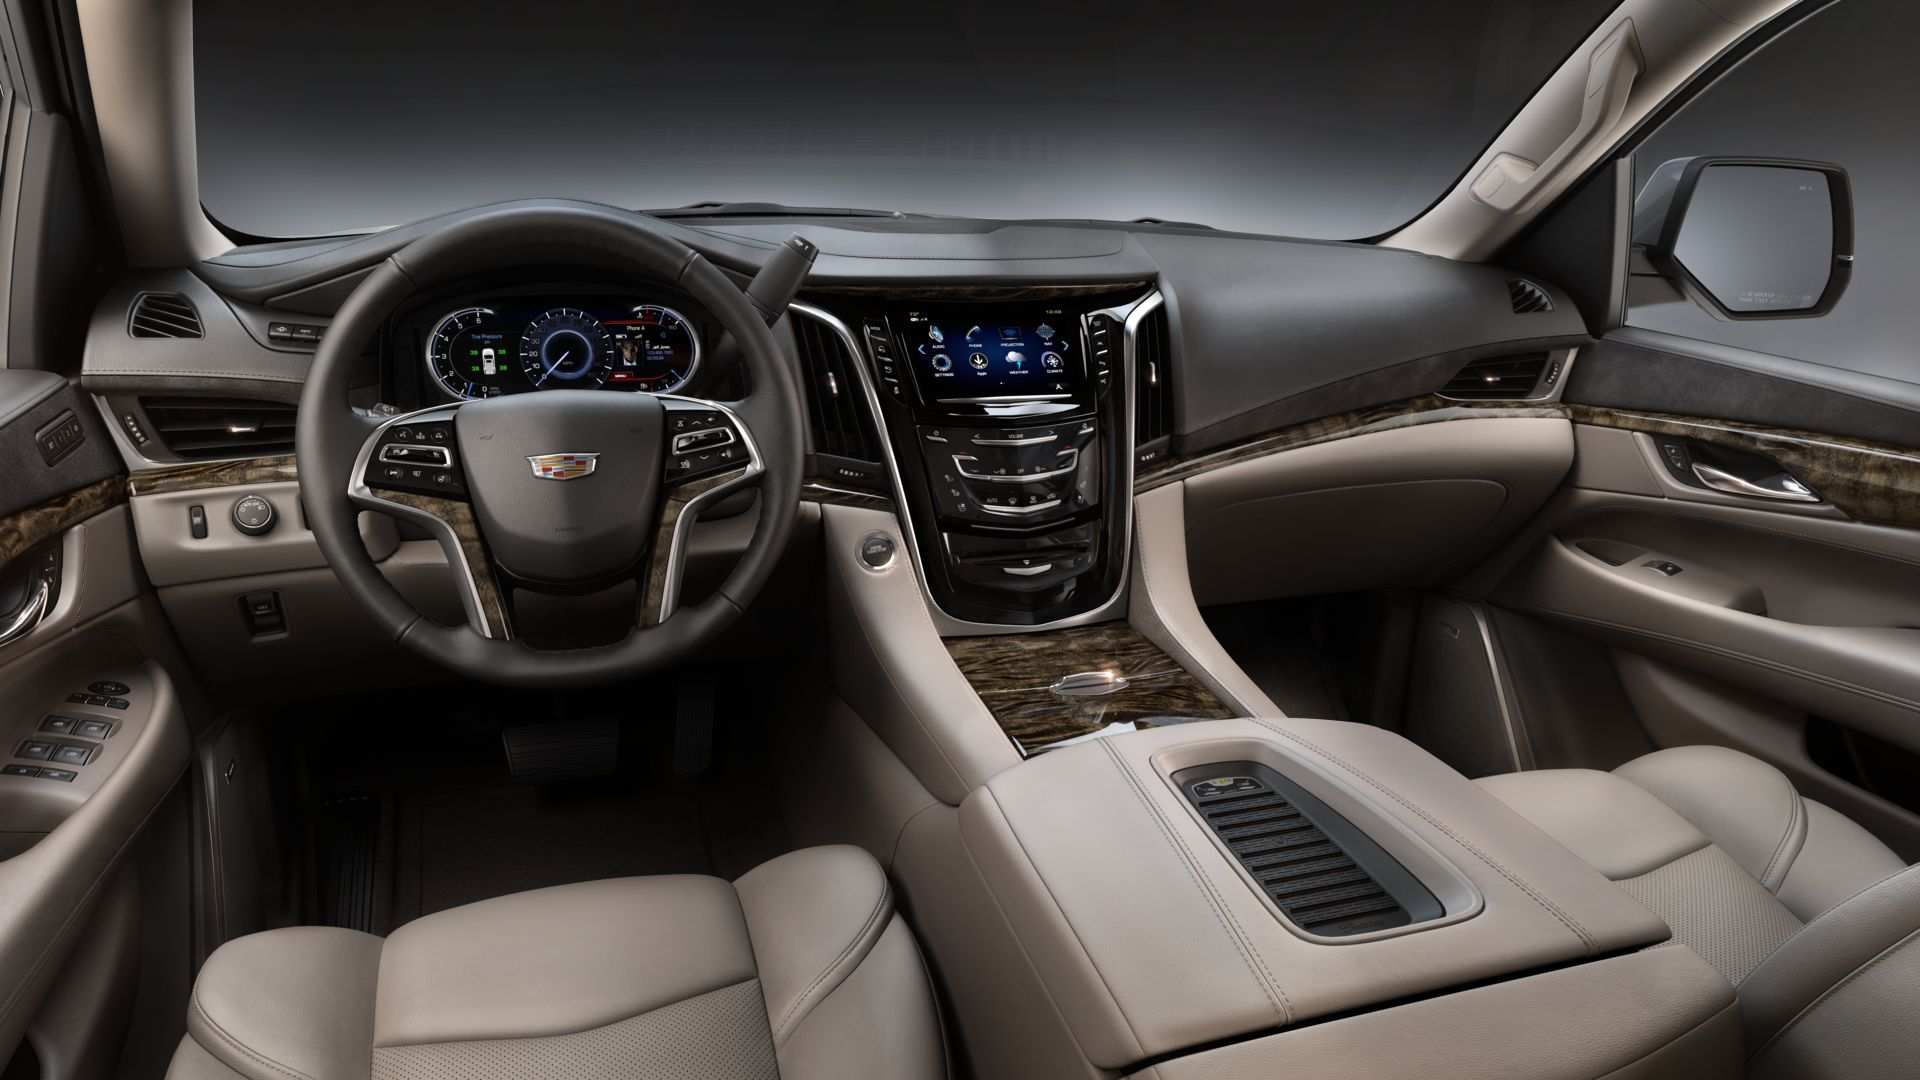 30 All New 2019 Cadillac Escalade Interior Prices with 2019 Cadillac Escalade Interior